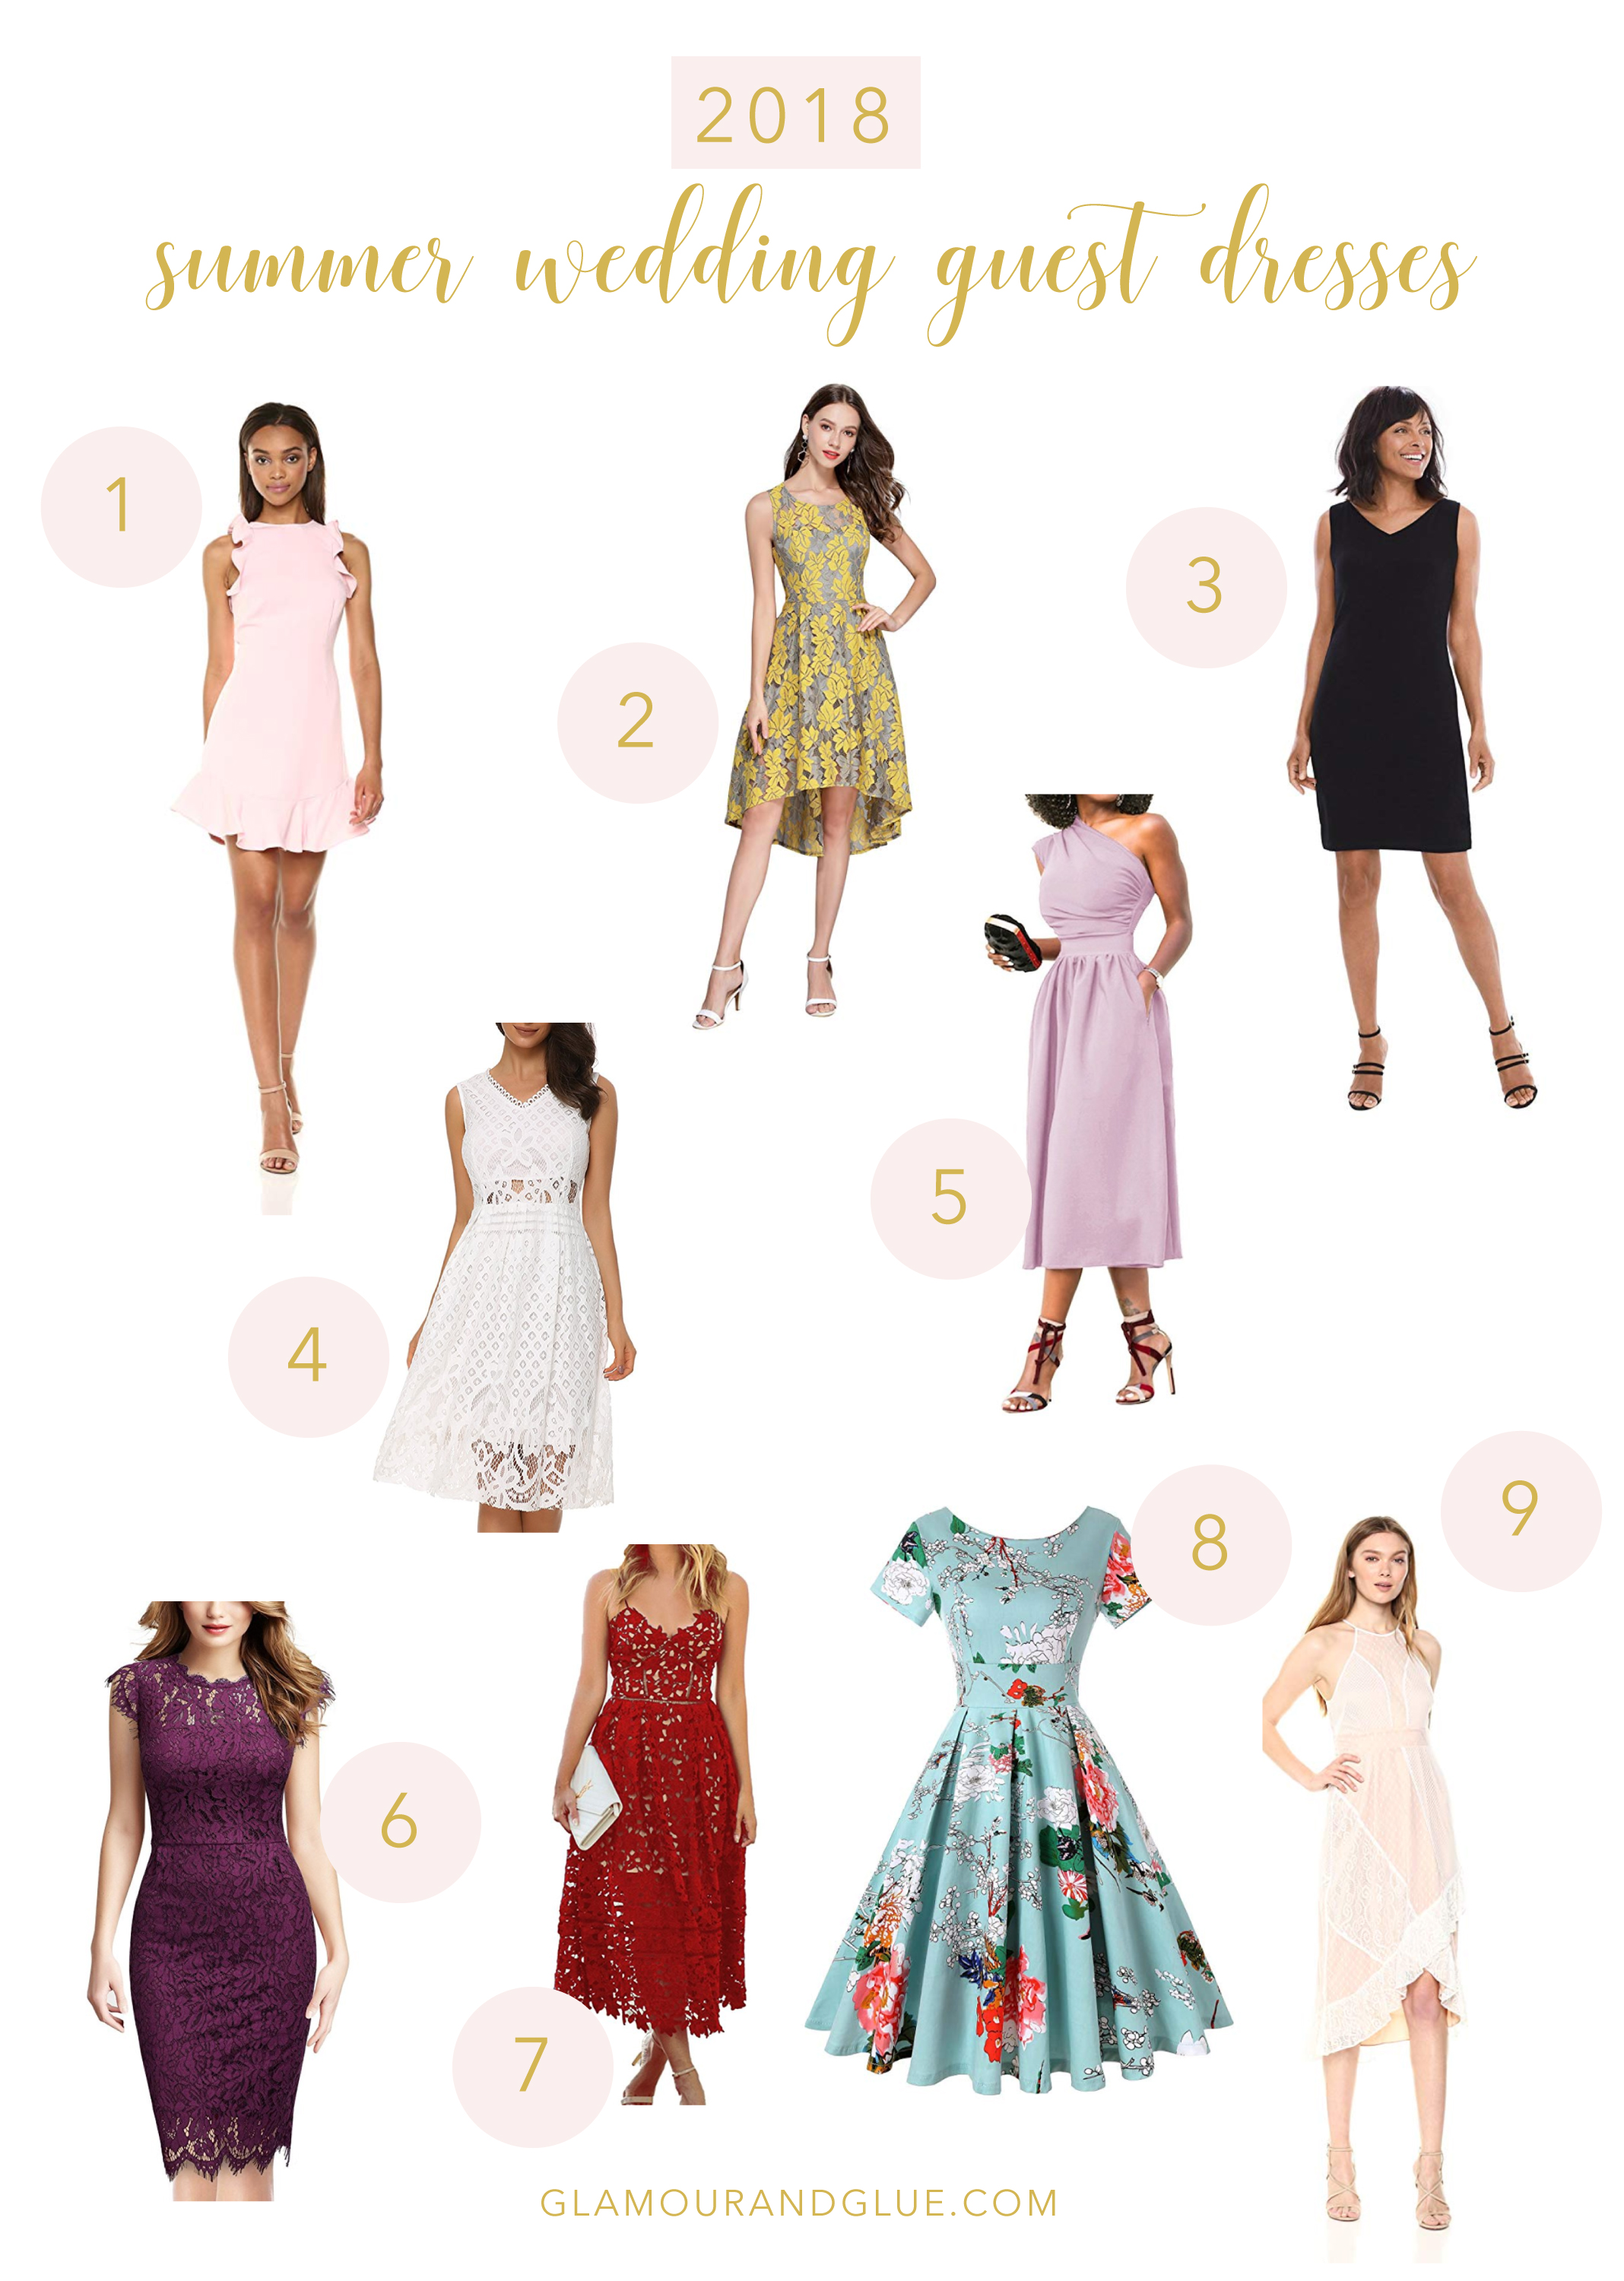 Summer Wedding Guest Dresses Glamourandglue